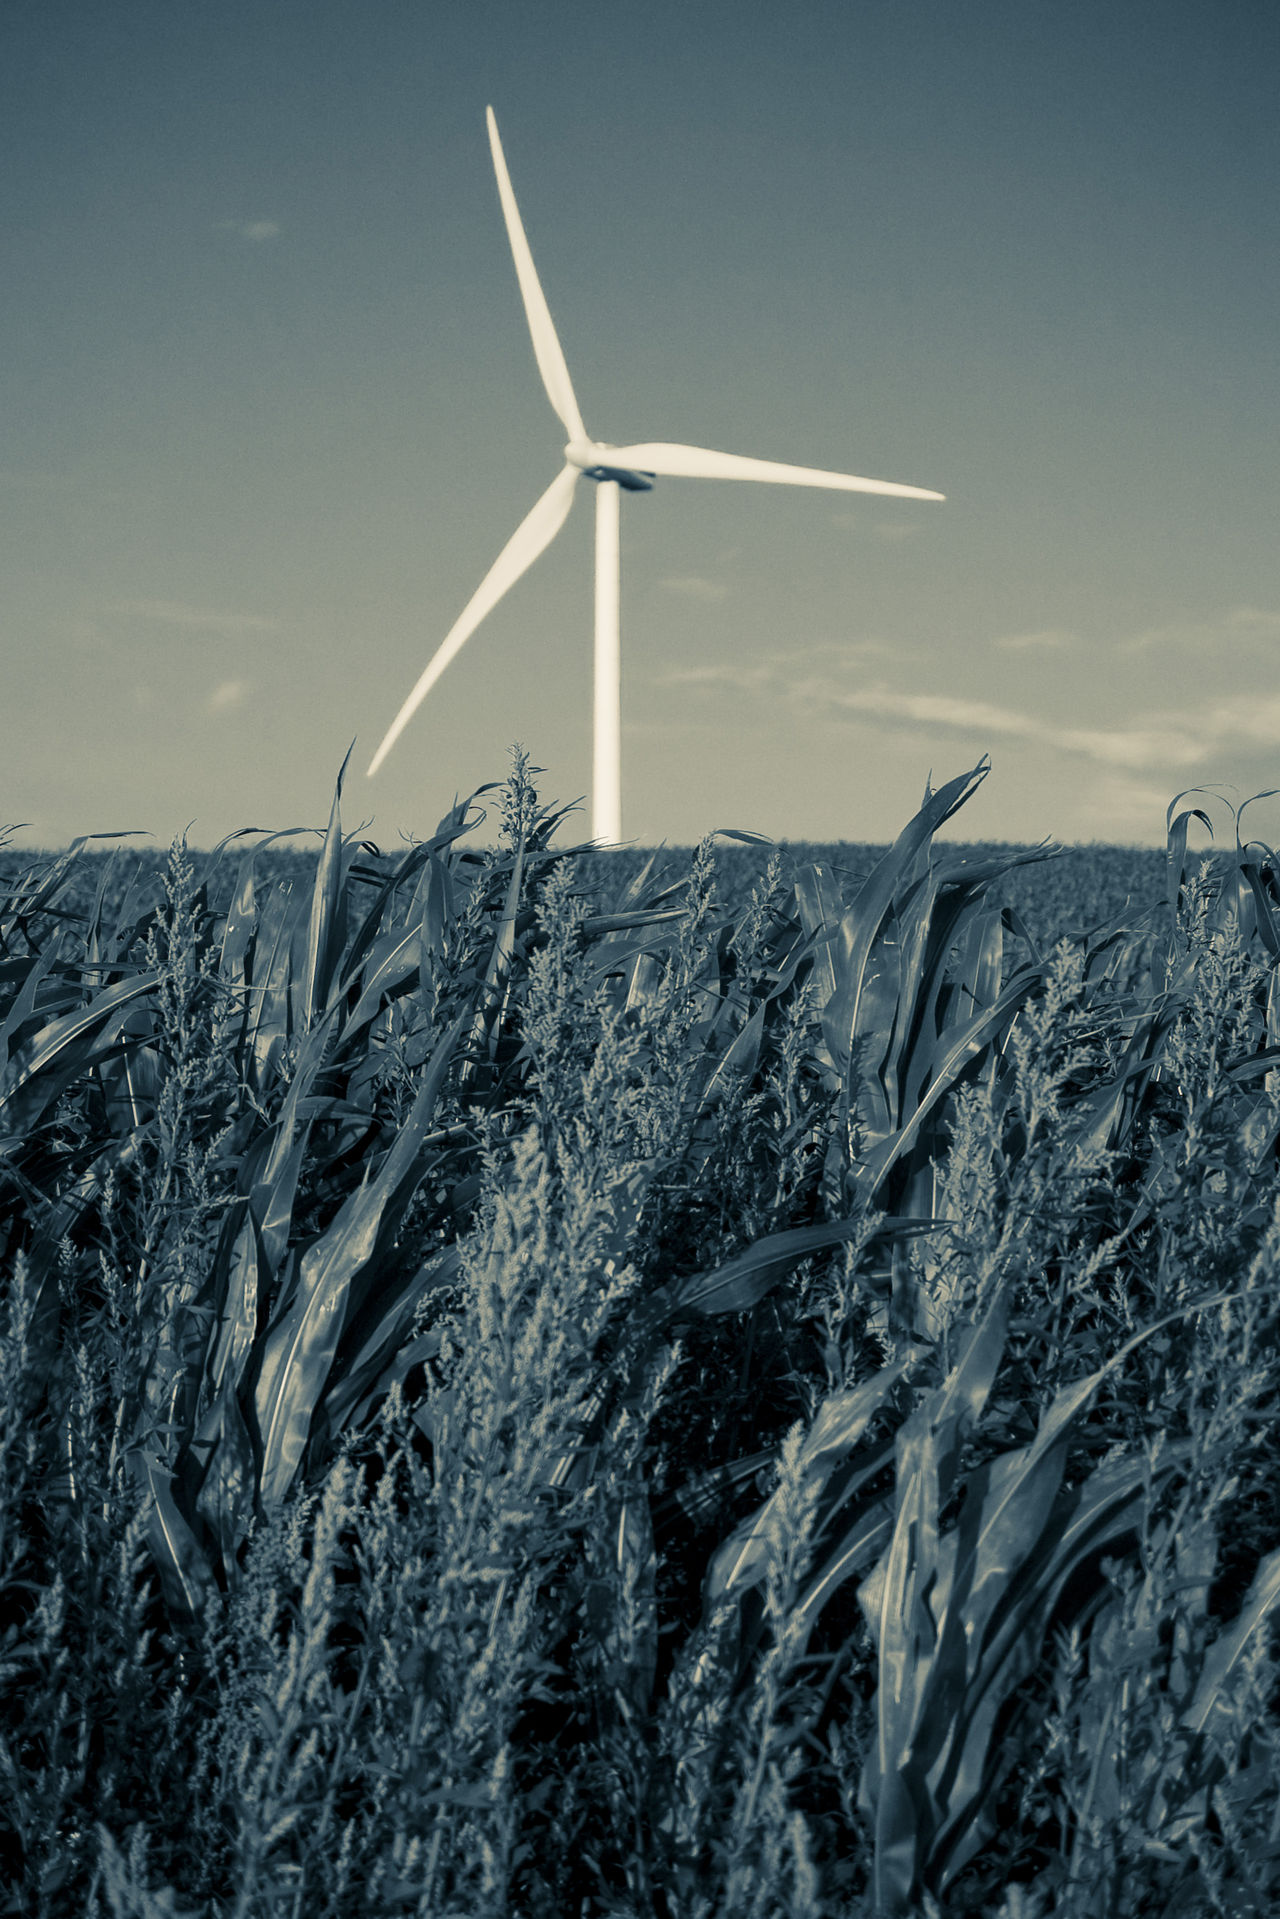 Alternative Energy Environmental Conservation Field With Wind Power Station Green Power Landscape Landscape With Power Station Monochrome Photography Outdoors Power Plant Power Plant In Field Technology And Nature Tone Splitting Wind Power Wind Power Generator